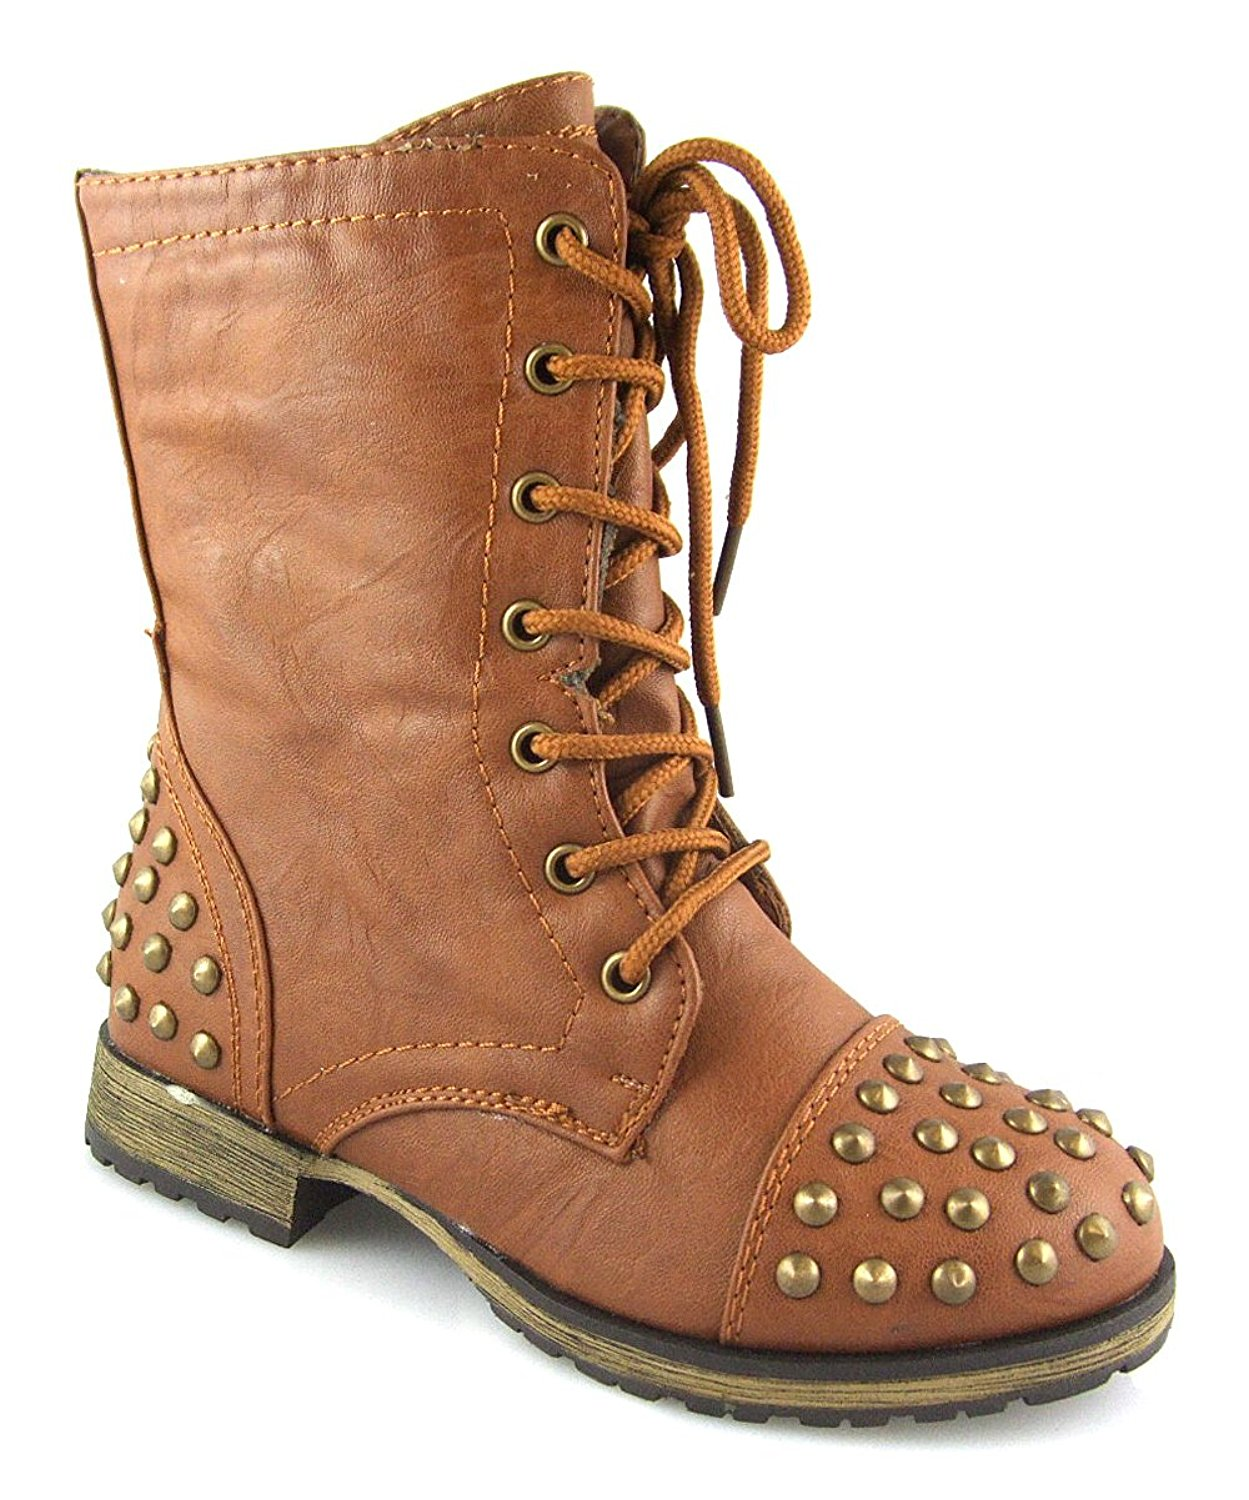 80f5160ecf26 Get Quotations · Megan 62K Little Girls Lace Up Combat Studded Boots Boots  Tan